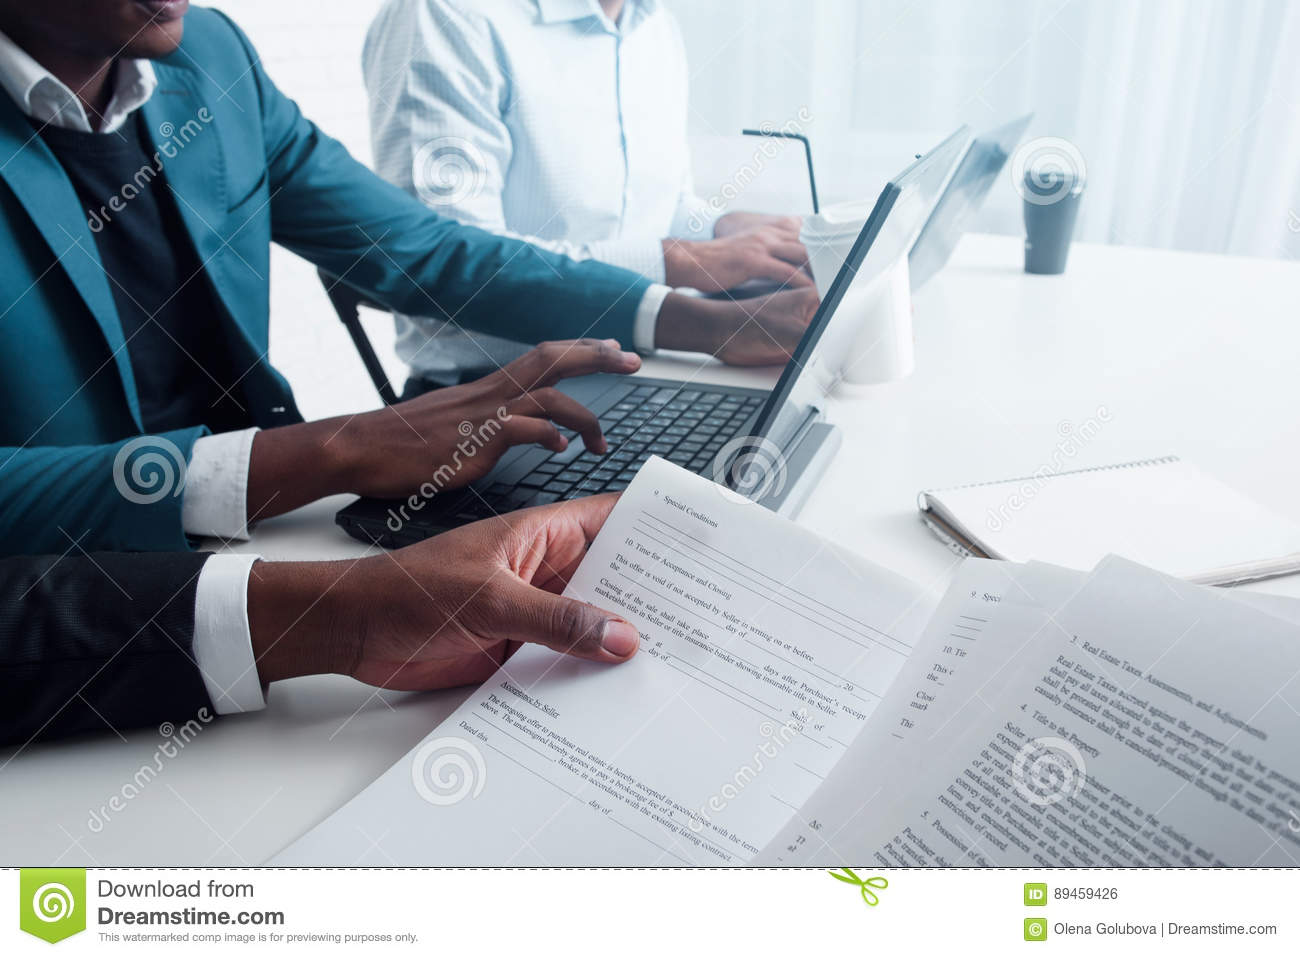 Individual business consulting for companies